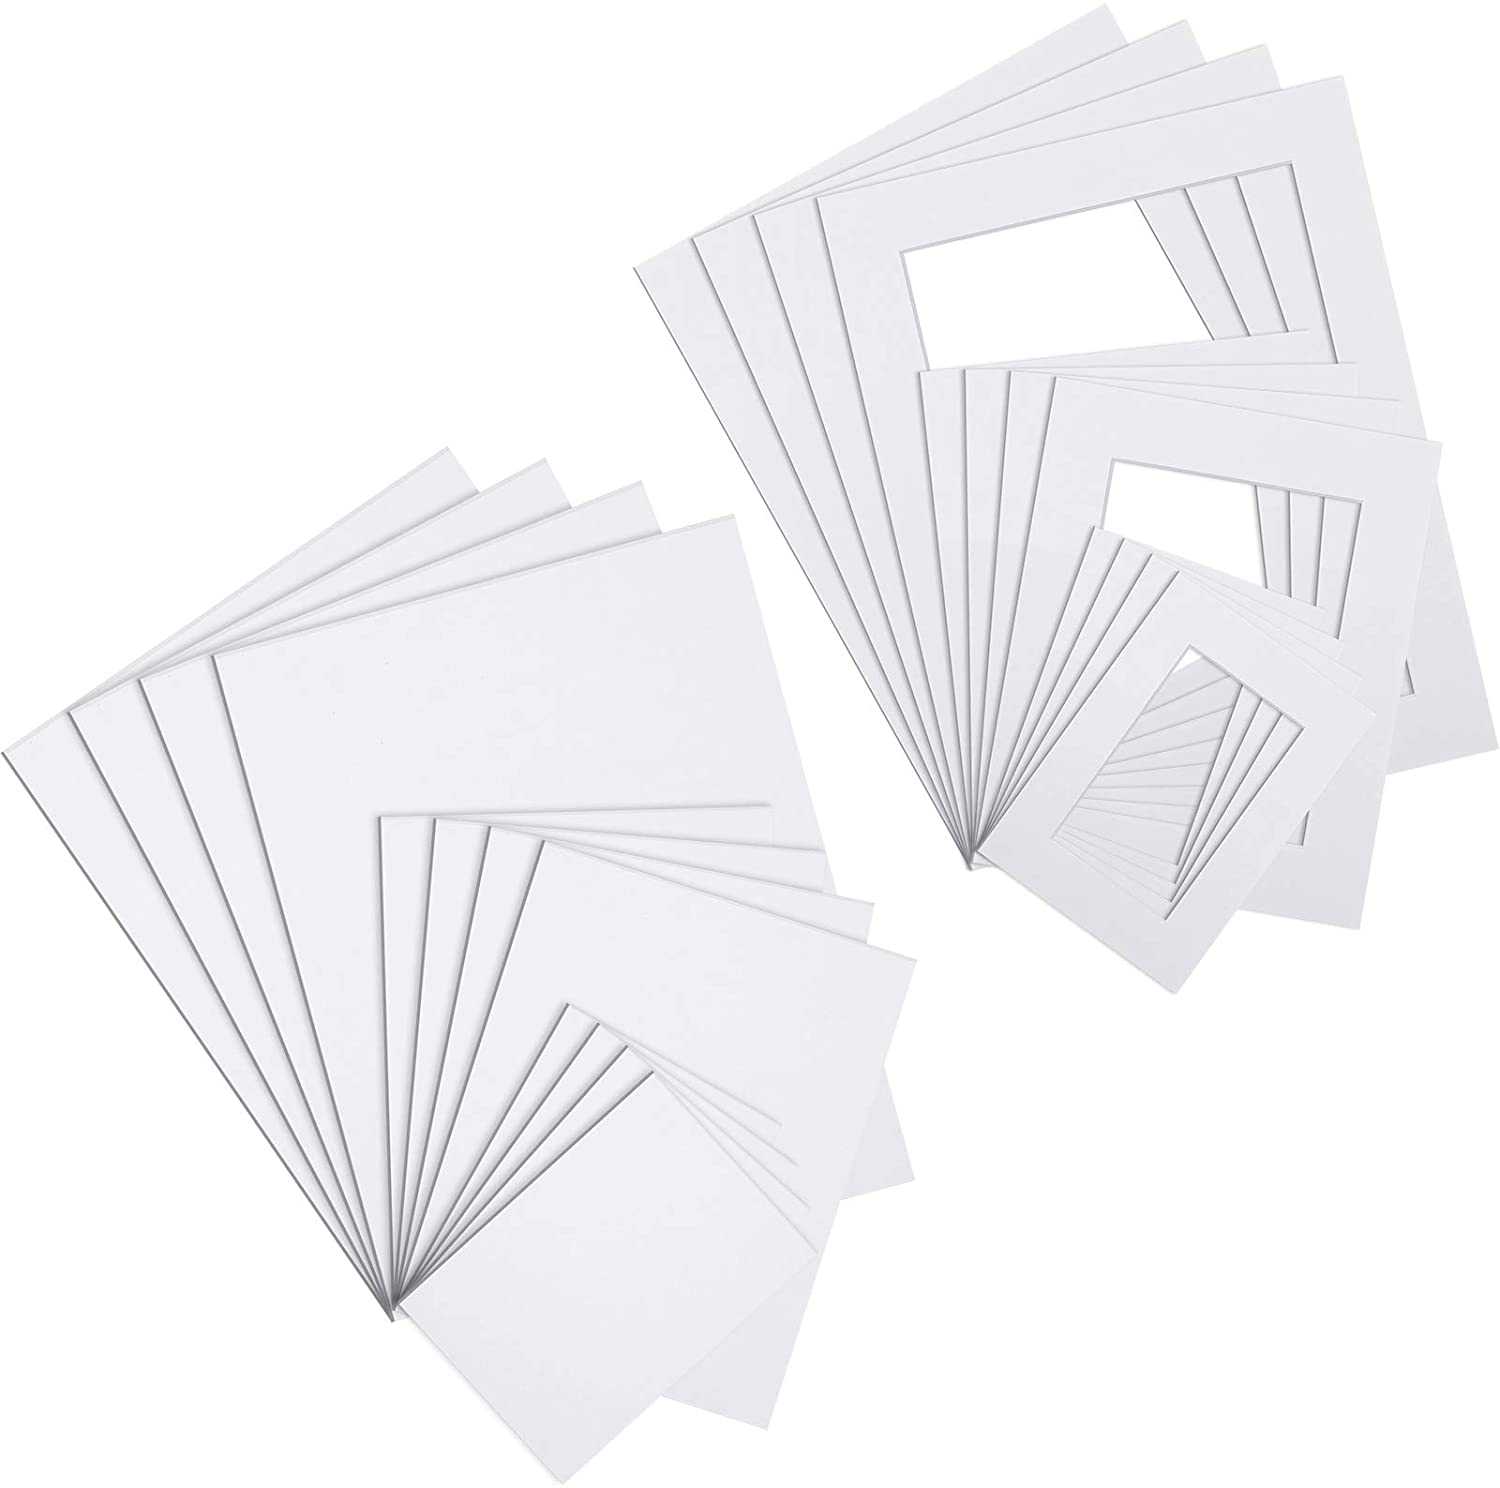 Online limited Mail order cheap product 24 Pieces Packaging Photo Set Includes Pre-Cut 12 Picture White